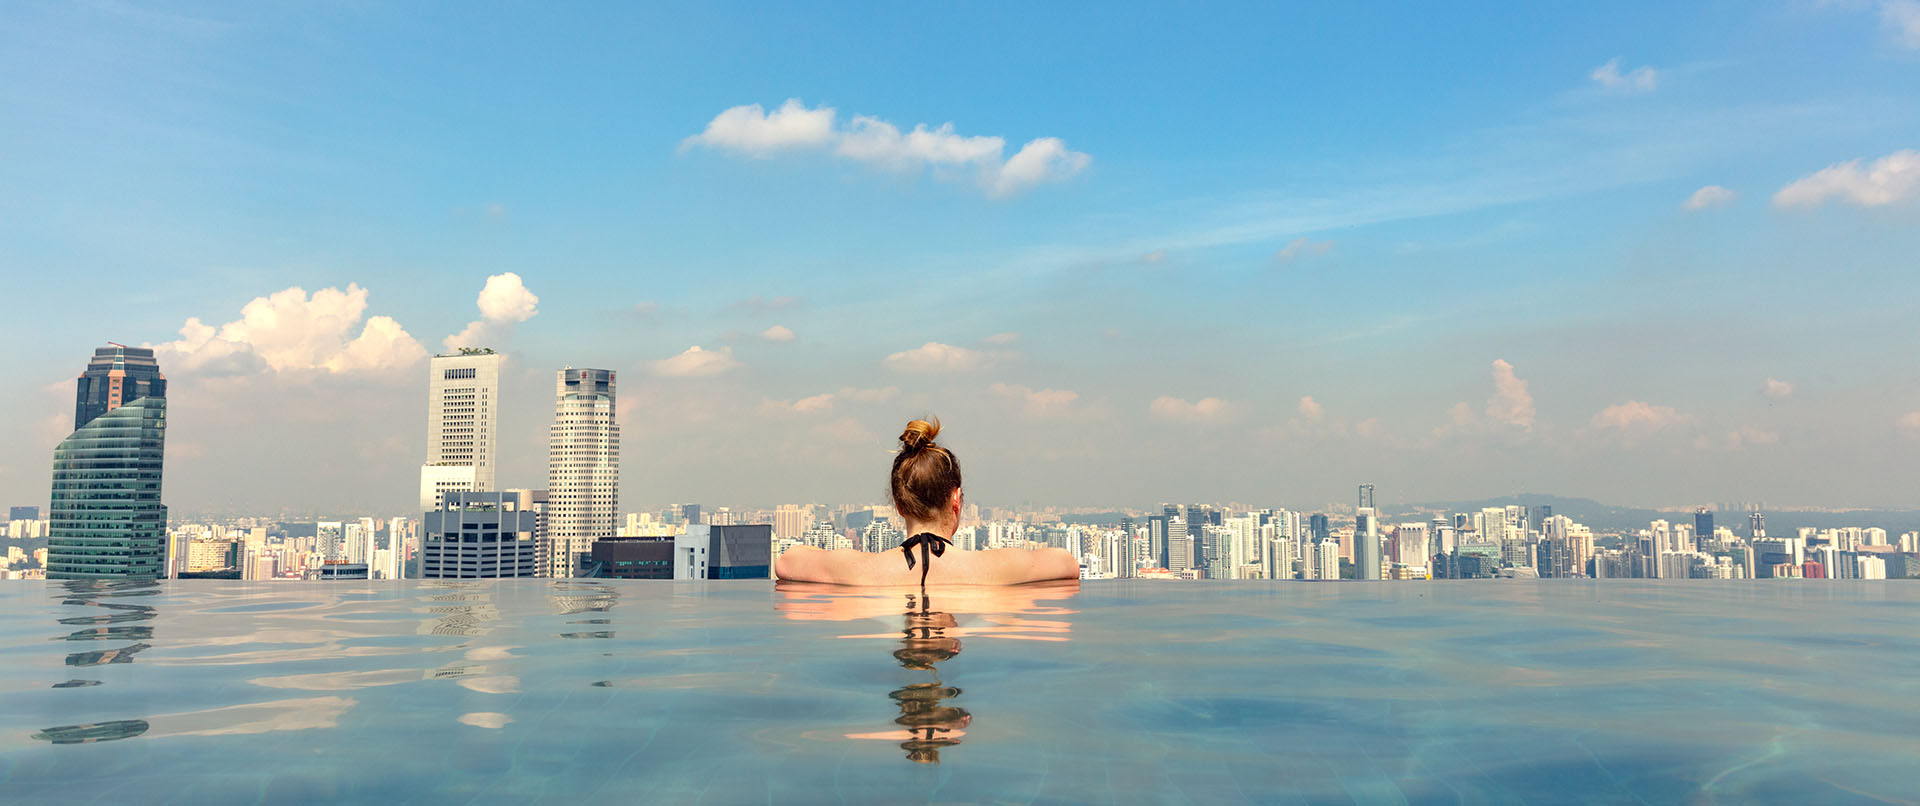 Female Tourist In Infinity Pool Of Marina Bay Singapore